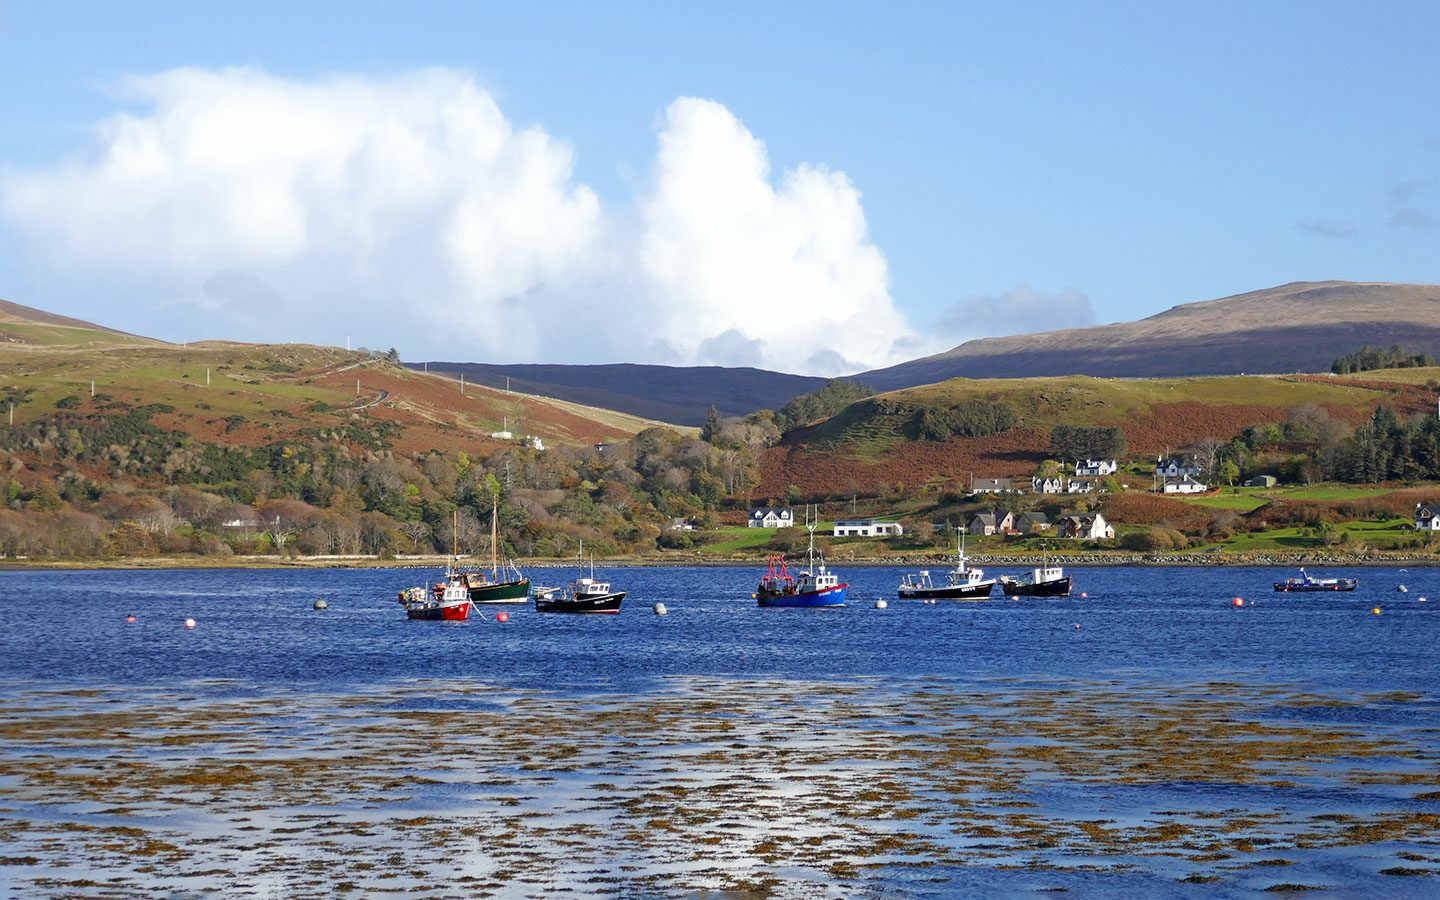 Boats in the harbour in Uig on the Isle of Skye